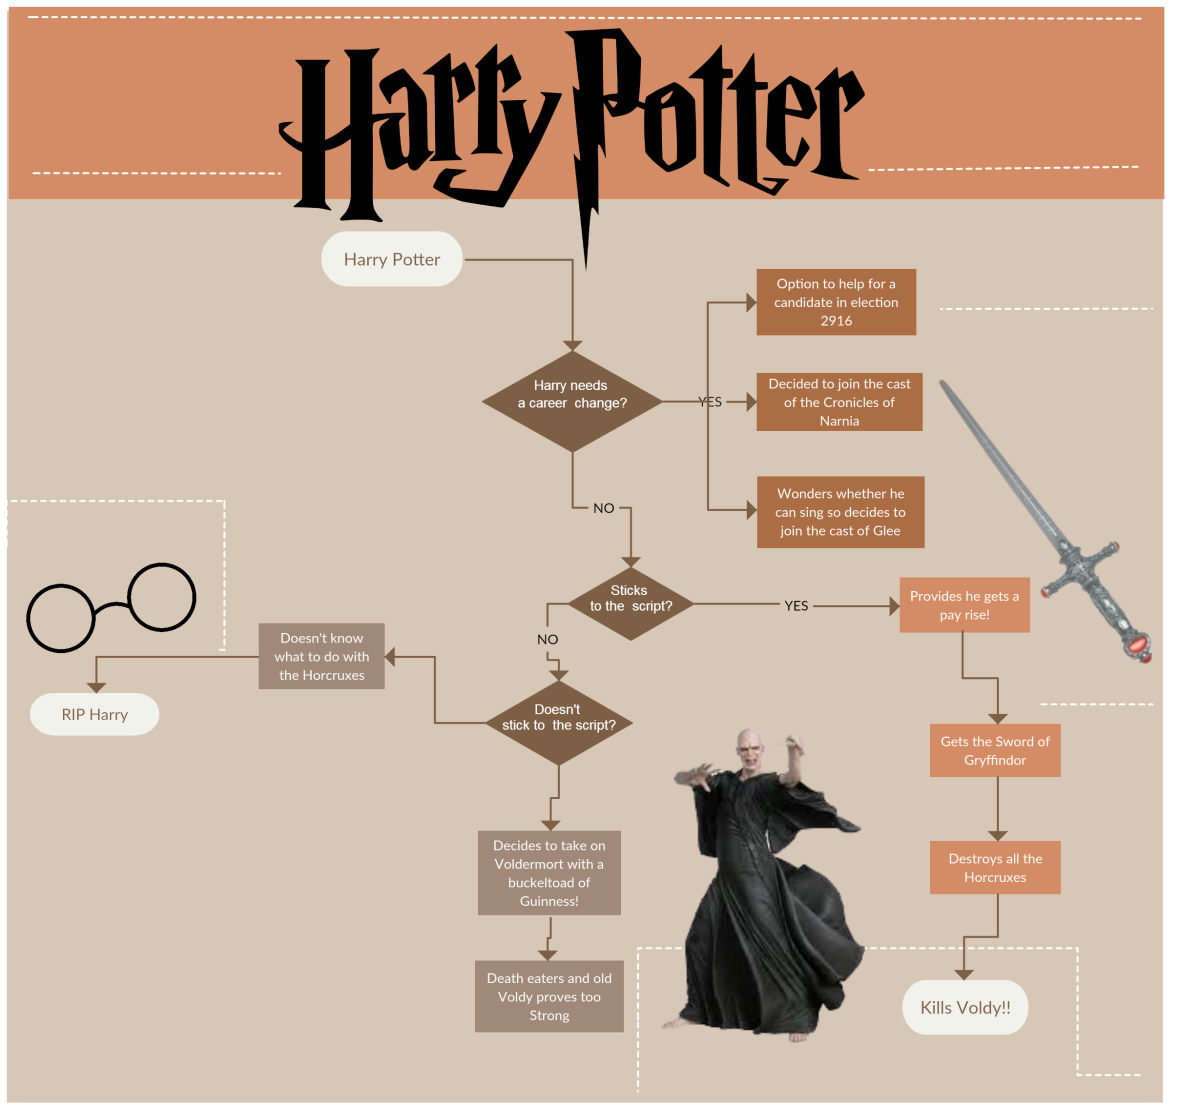 Harry Potter Video Game Flowchart